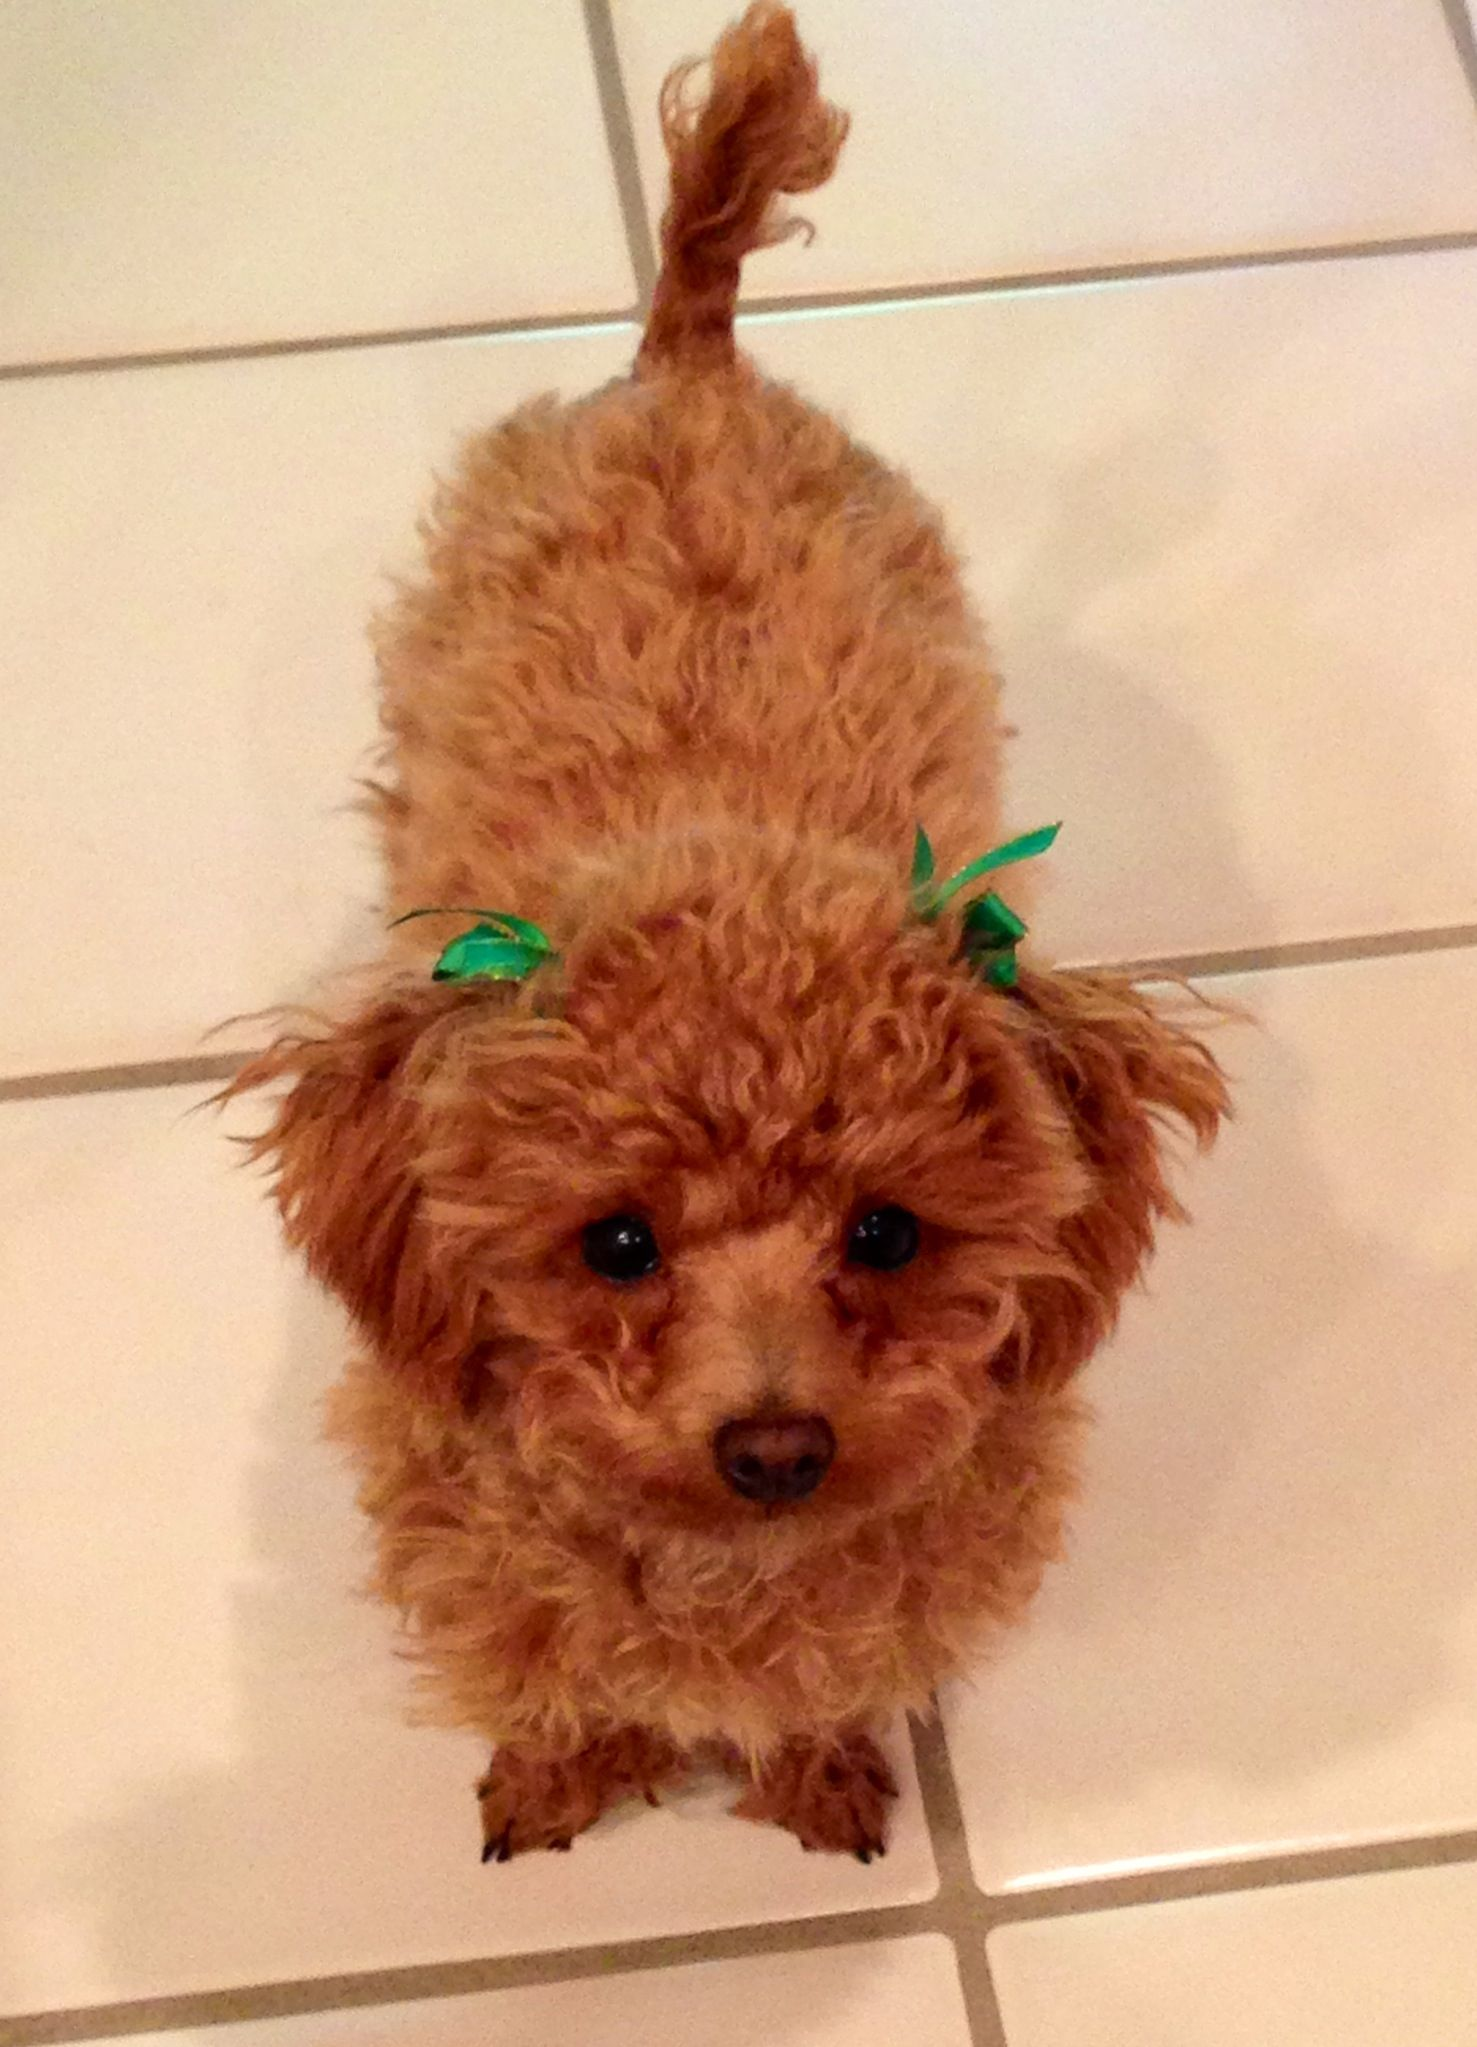 6 Month Old Toy Poodle Puppy Toy Poodle Puppies Poodle Poodle Puppy